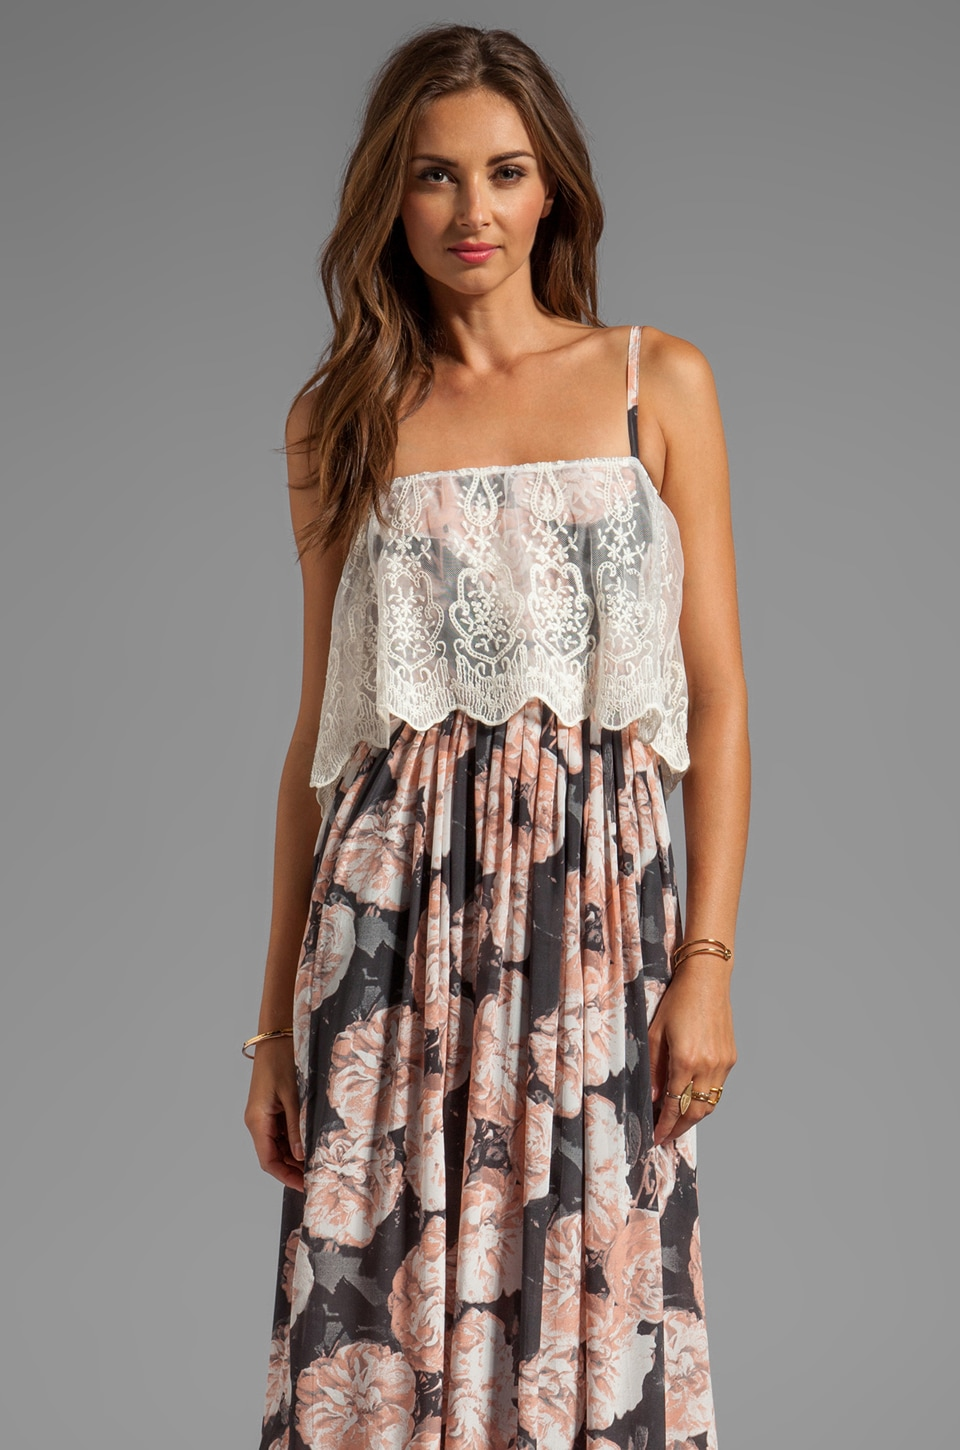 Gypsy Junkies Sloan Maxi Dress in Desert Rose